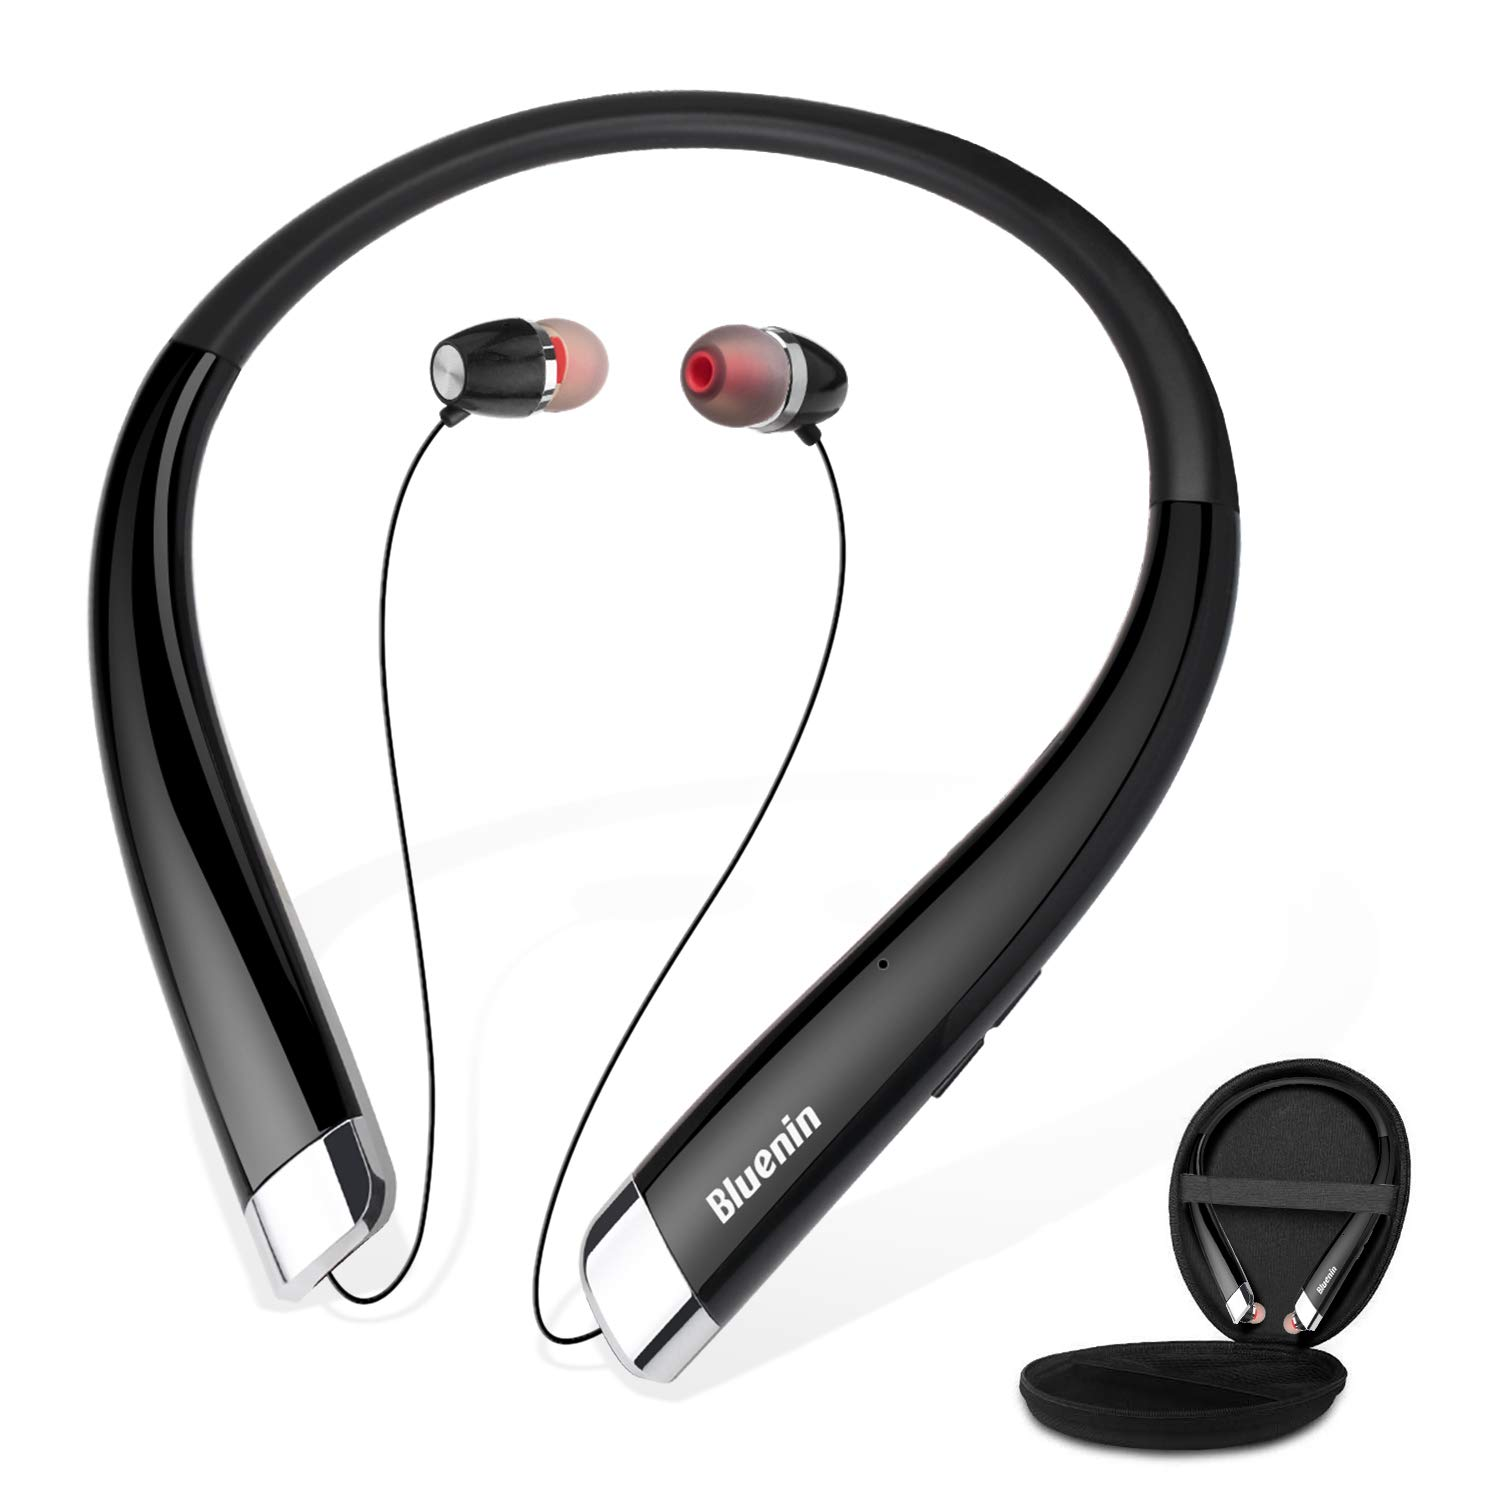 Bluenin 990 Bluetooth Headphones with Auto Retractable Earbuds